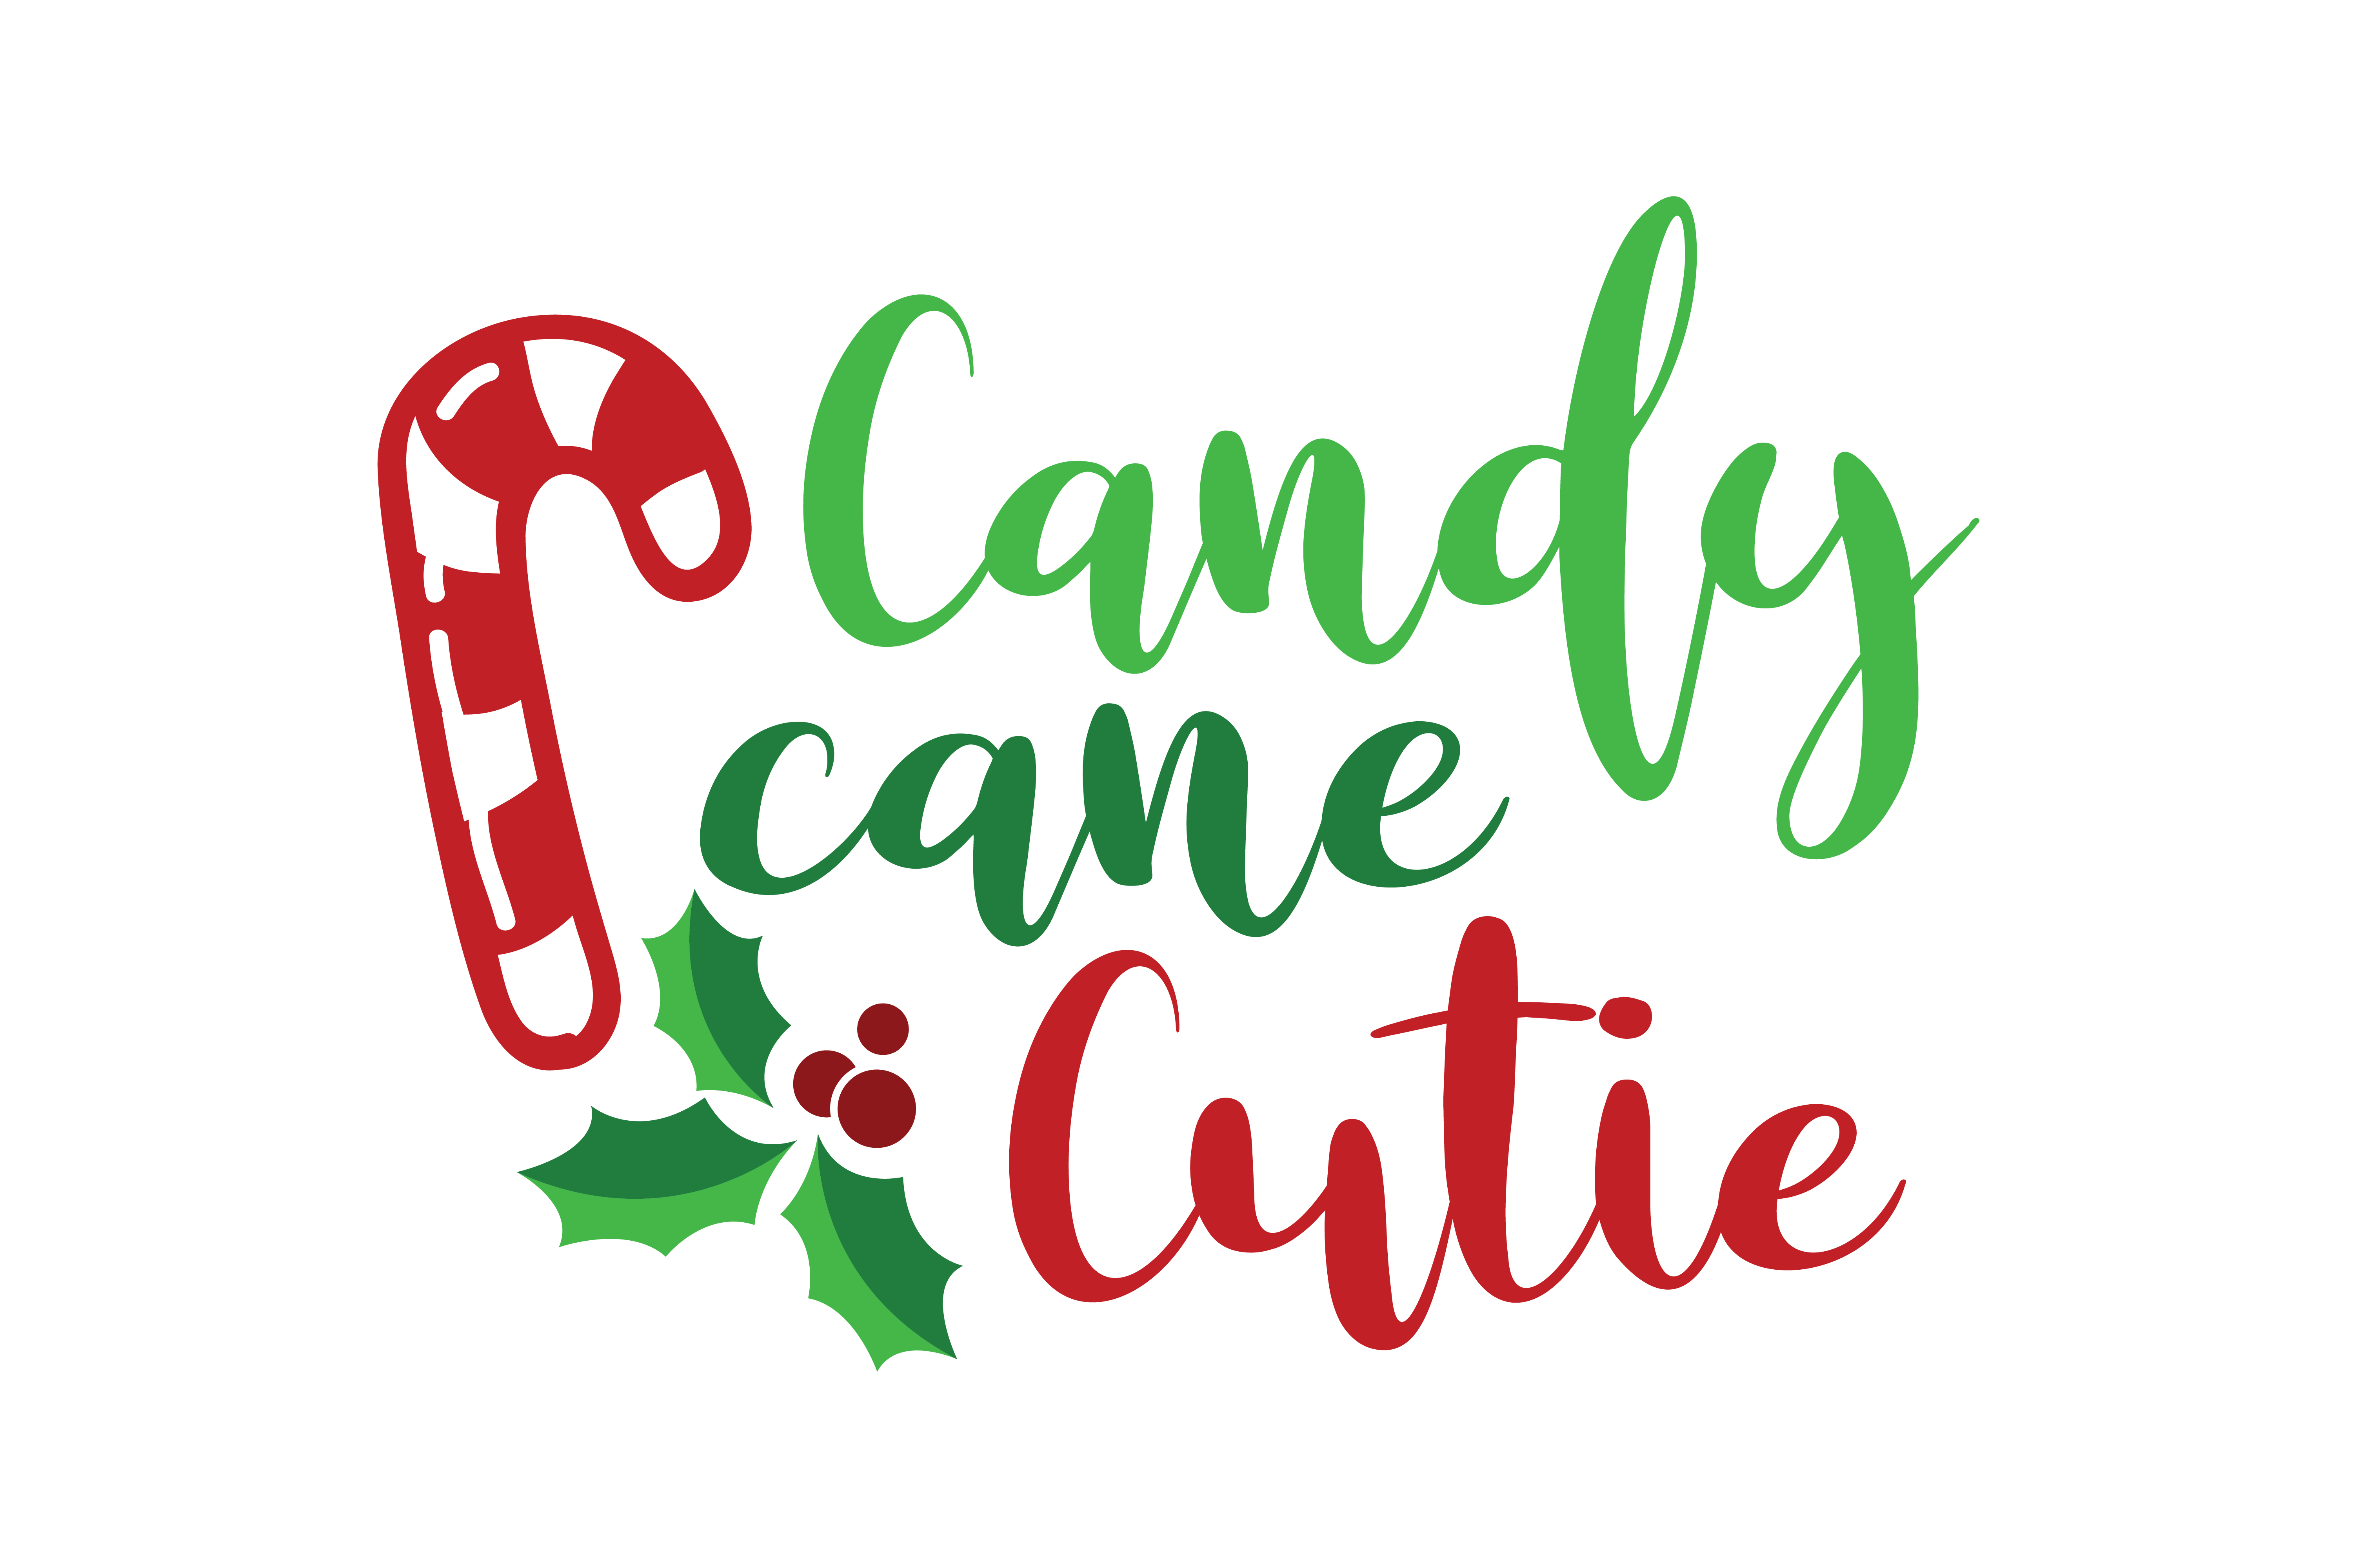 Download Free Candy Cane Cutie Svg Cut Graphic By Thelucky Creative Fabrica for Cricut Explore, Silhouette and other cutting machines.